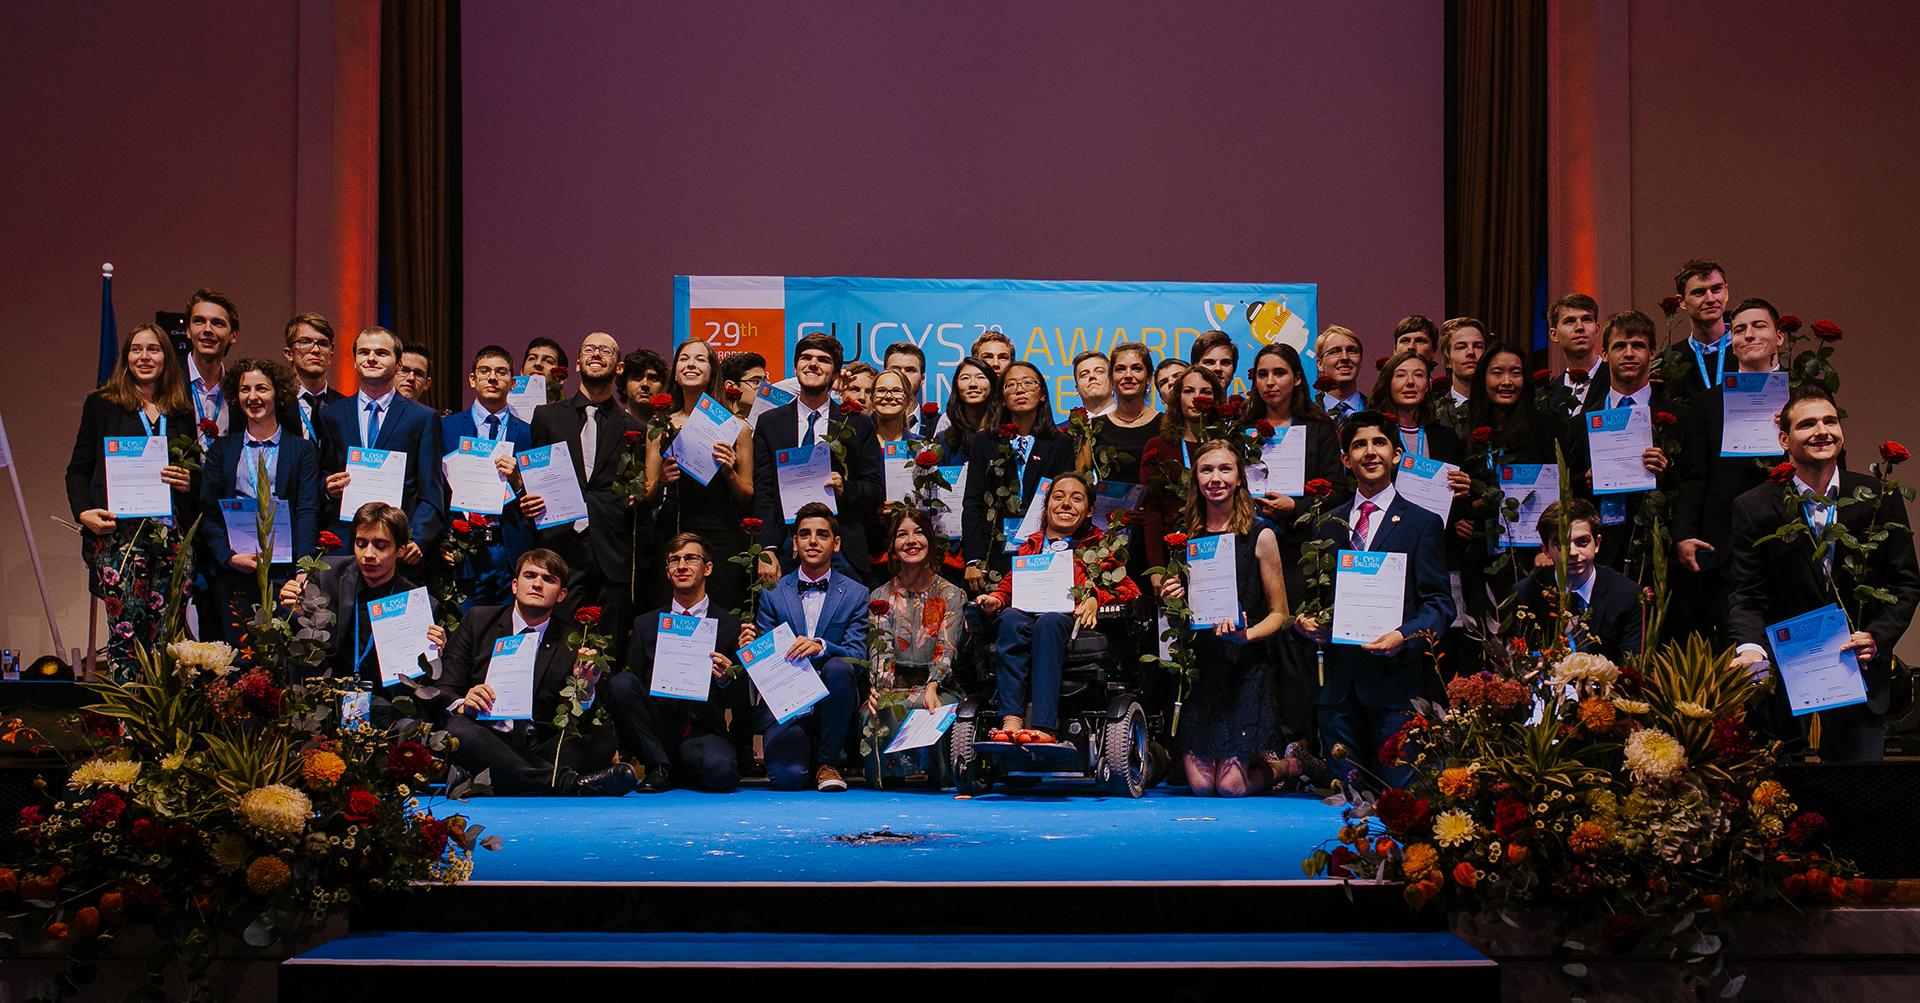 Winners at the EUCYS 2017 Awards Ceremony